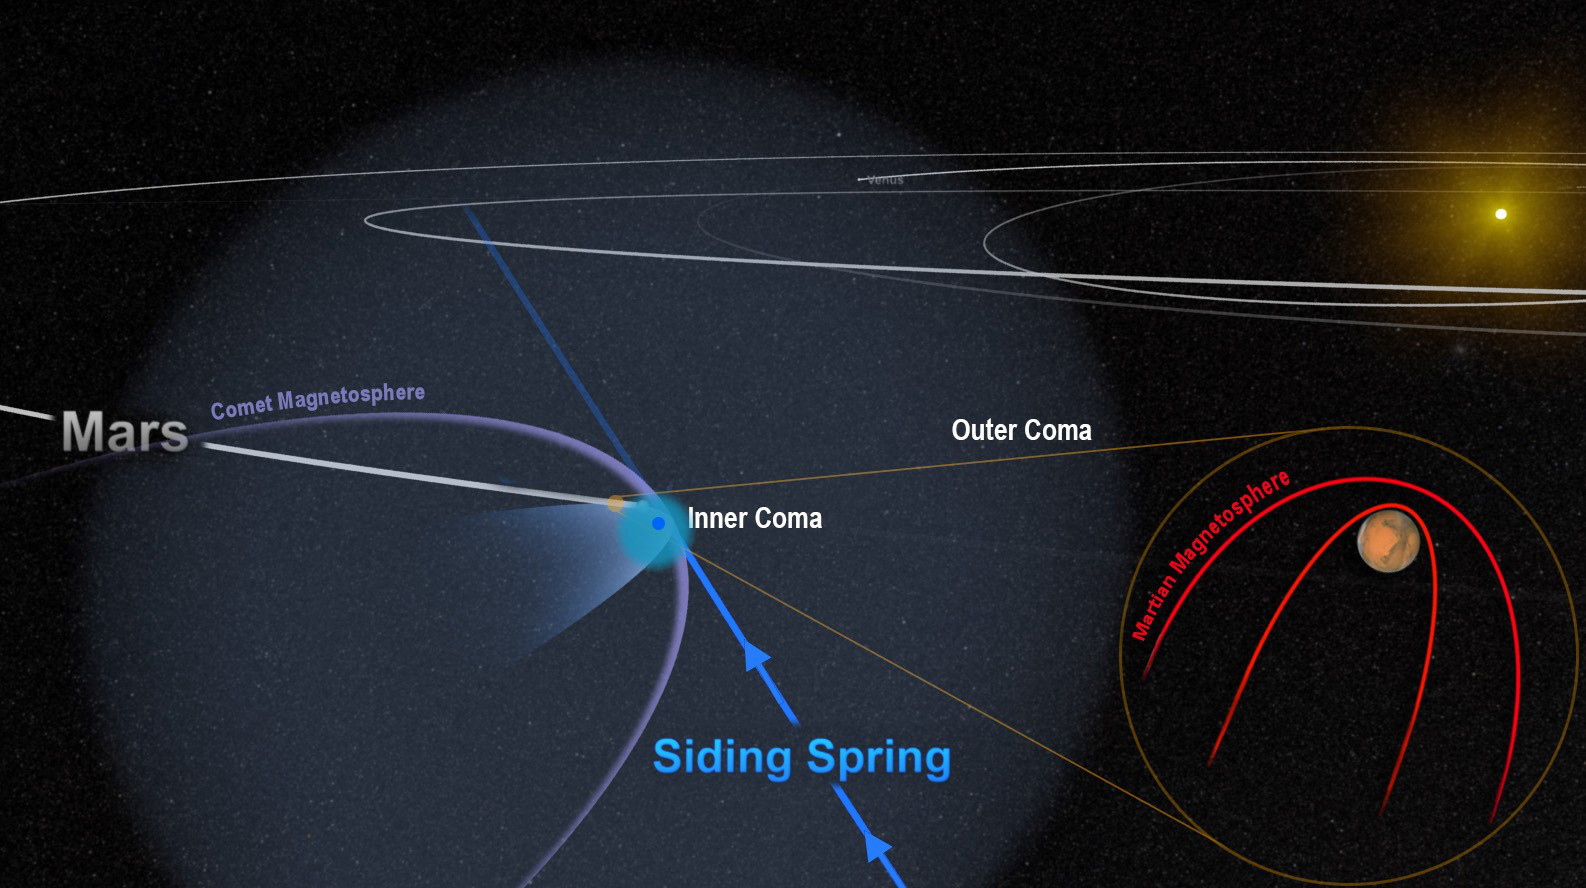 The close encounter between comet Siding Spring and Mars flooded the planet with an invisible tide of charged particles from the comet's coma. The dense inner coma reached the surface of the planet, or nearly so. The comet's powerful magnetic field temporarily merged with, and overwhelmed, the planet's weak field, as shown in this artist's depiction. Illustration credits: NASA/Goddard.